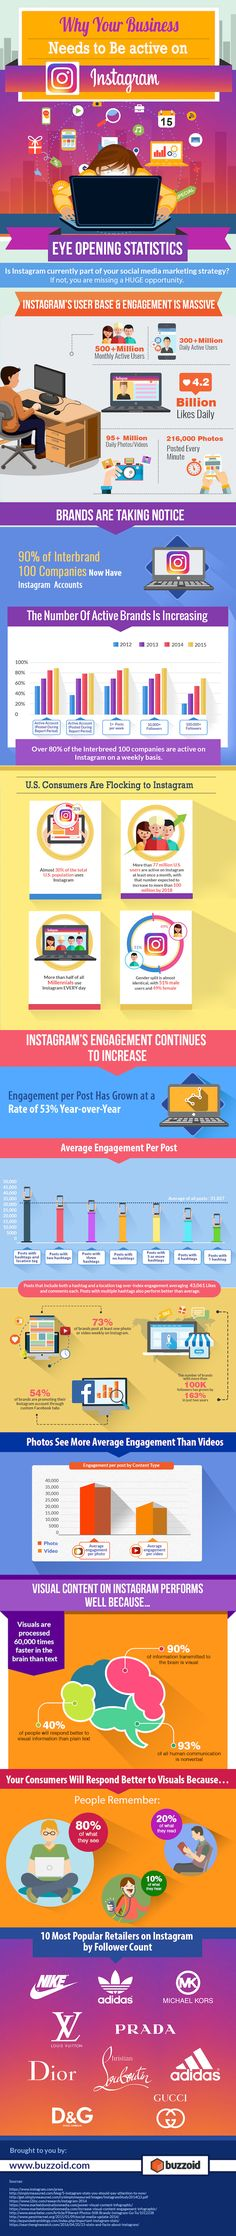 Why Instagram Needs to Be Part of Your Marketing Strategy (Infographic)